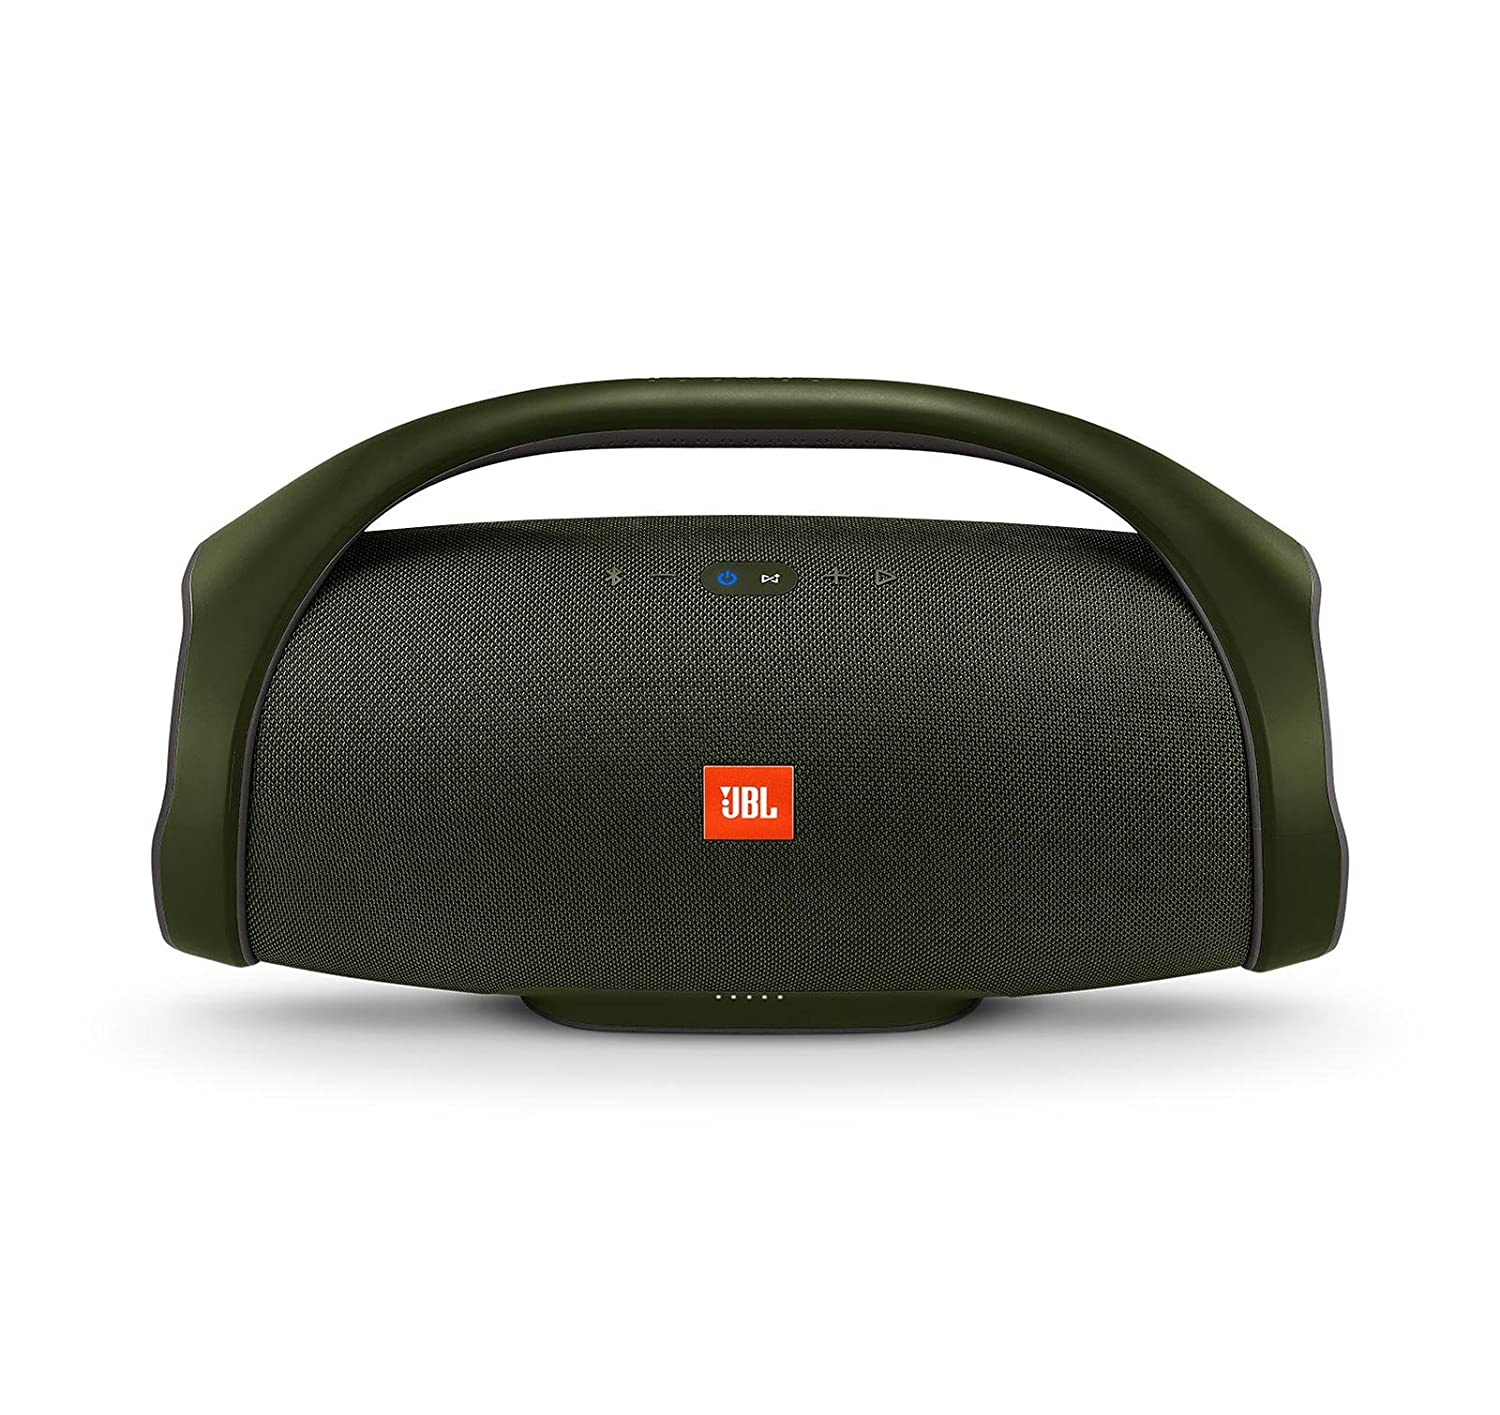 JBL Boombox Black Friday Deals 2020